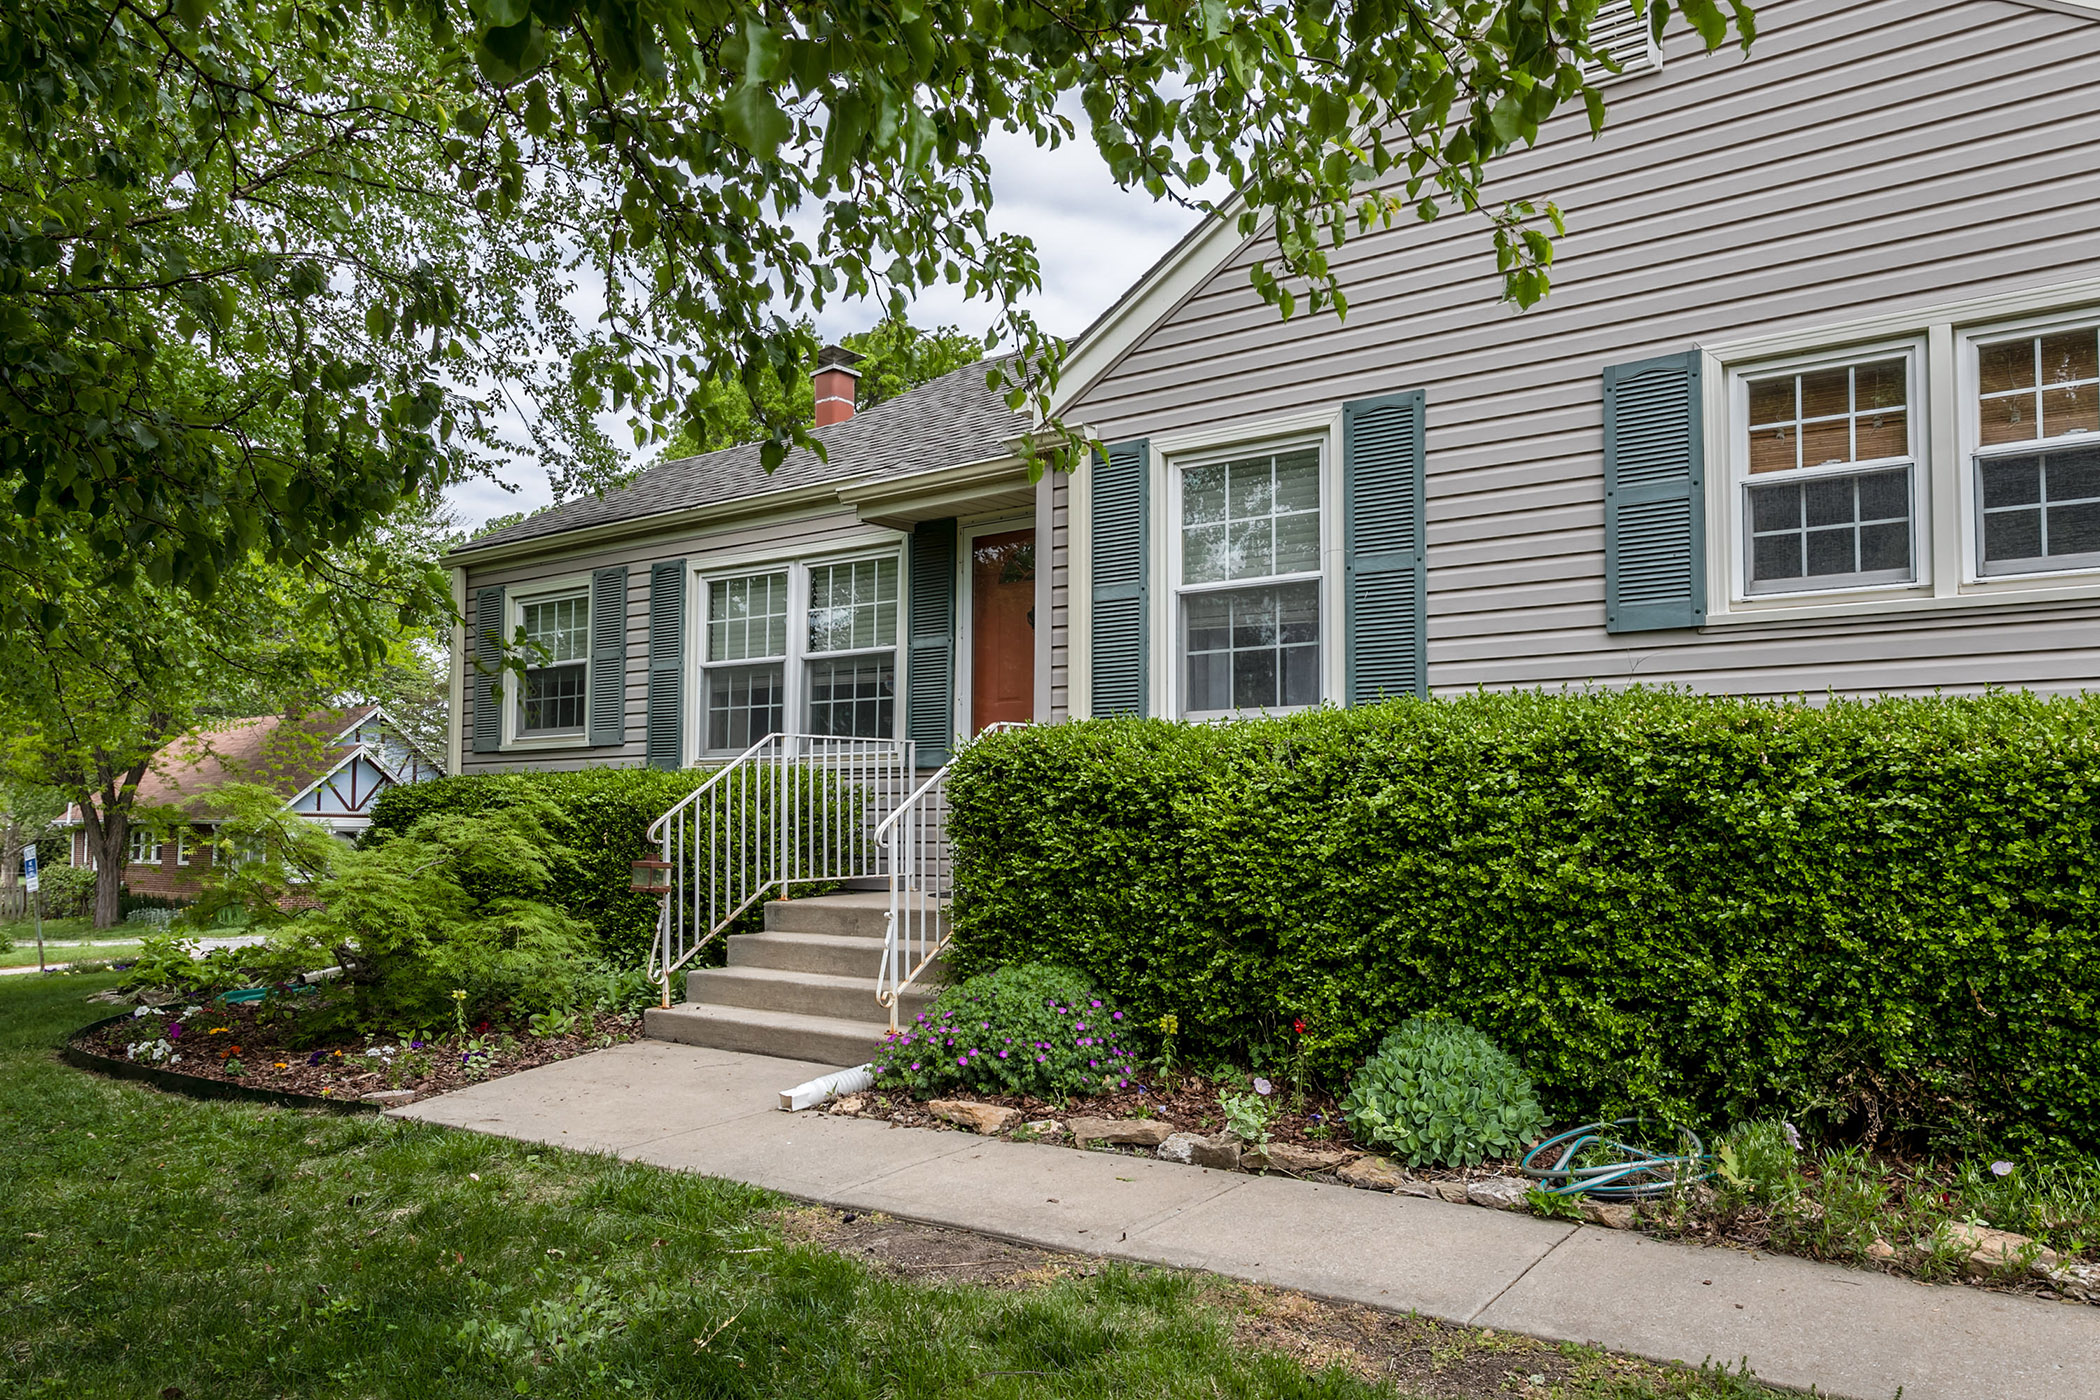 JUST LISTED TODAY! Super Cute and MOVE-IN READY Ranch Home!